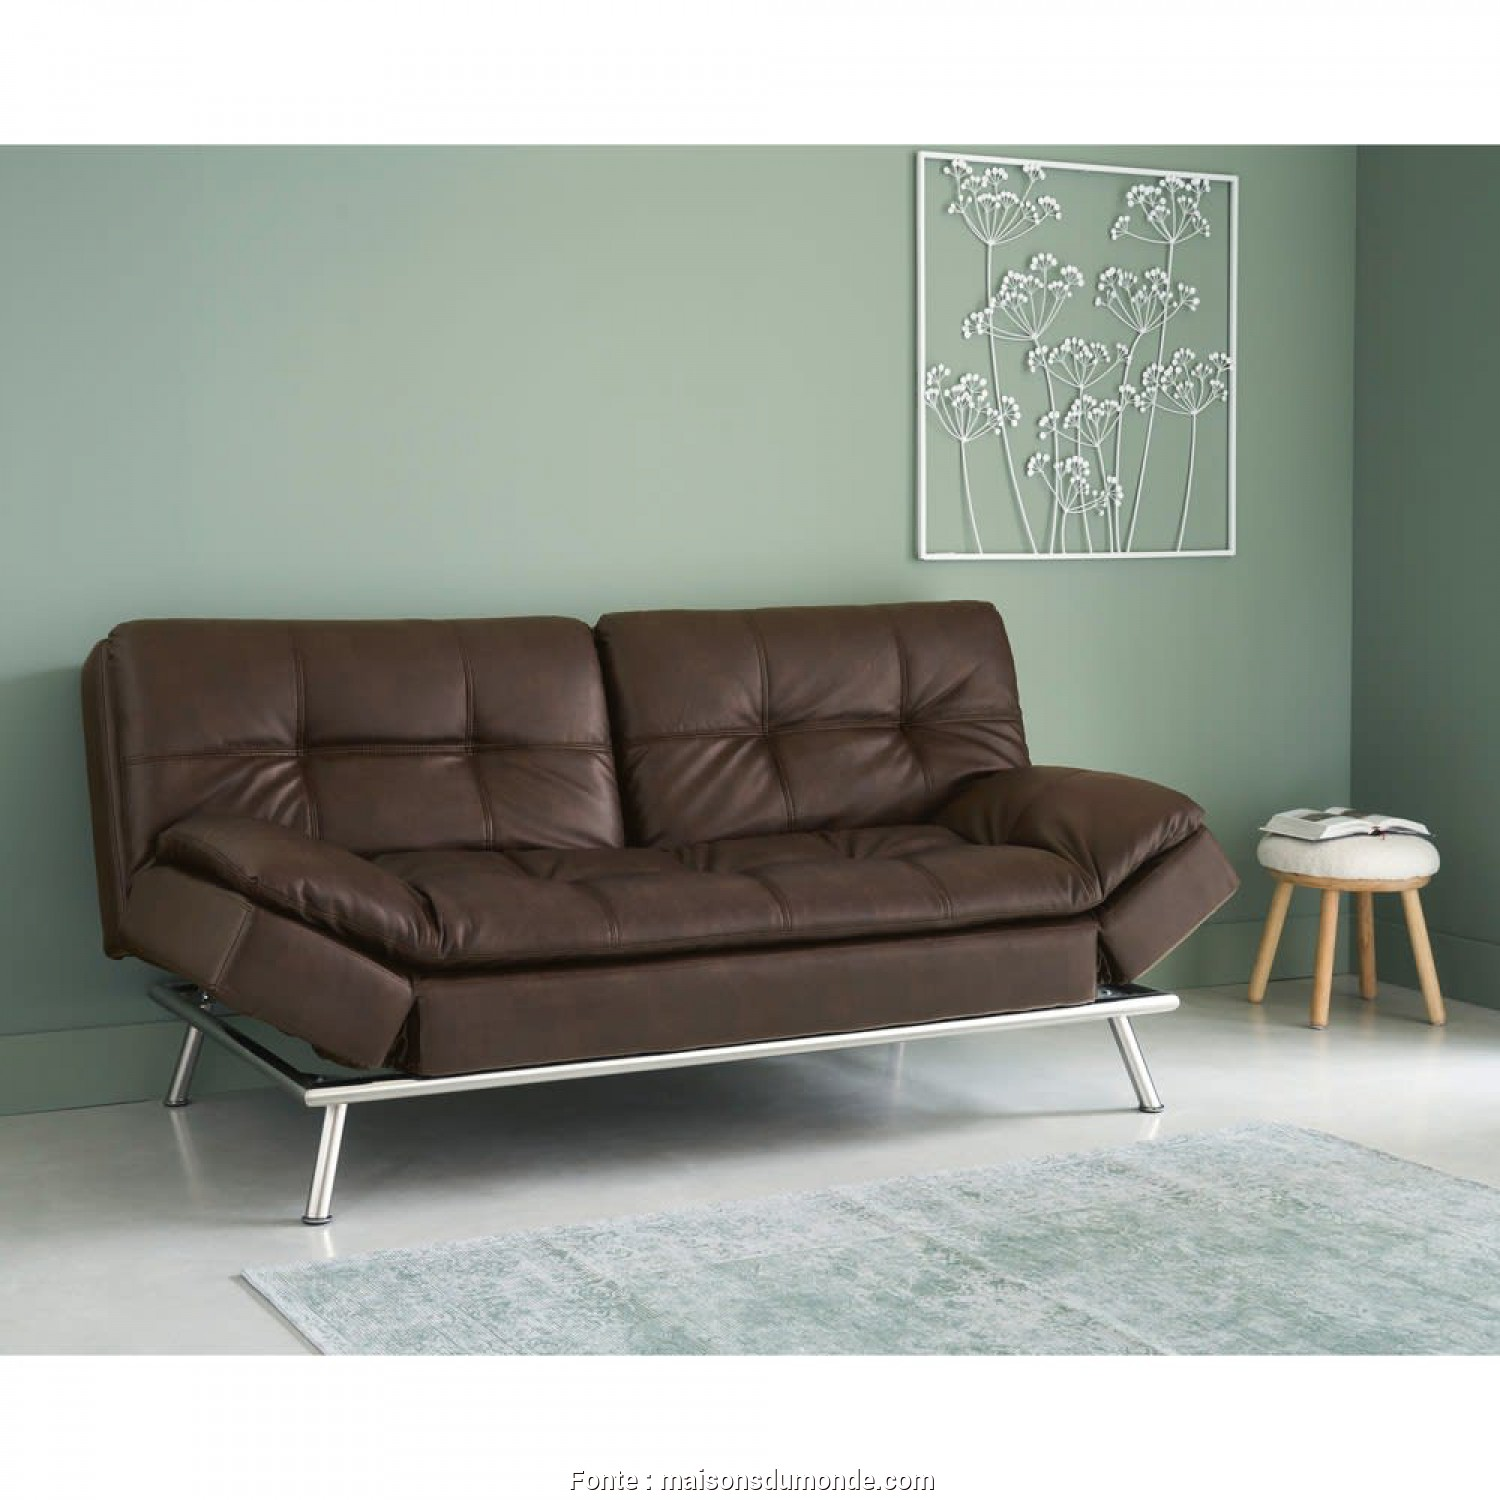 Divano Denver Maison Du Monde, Bello Brown 3-Seater Tufted Clic Clac Sofa, Denver